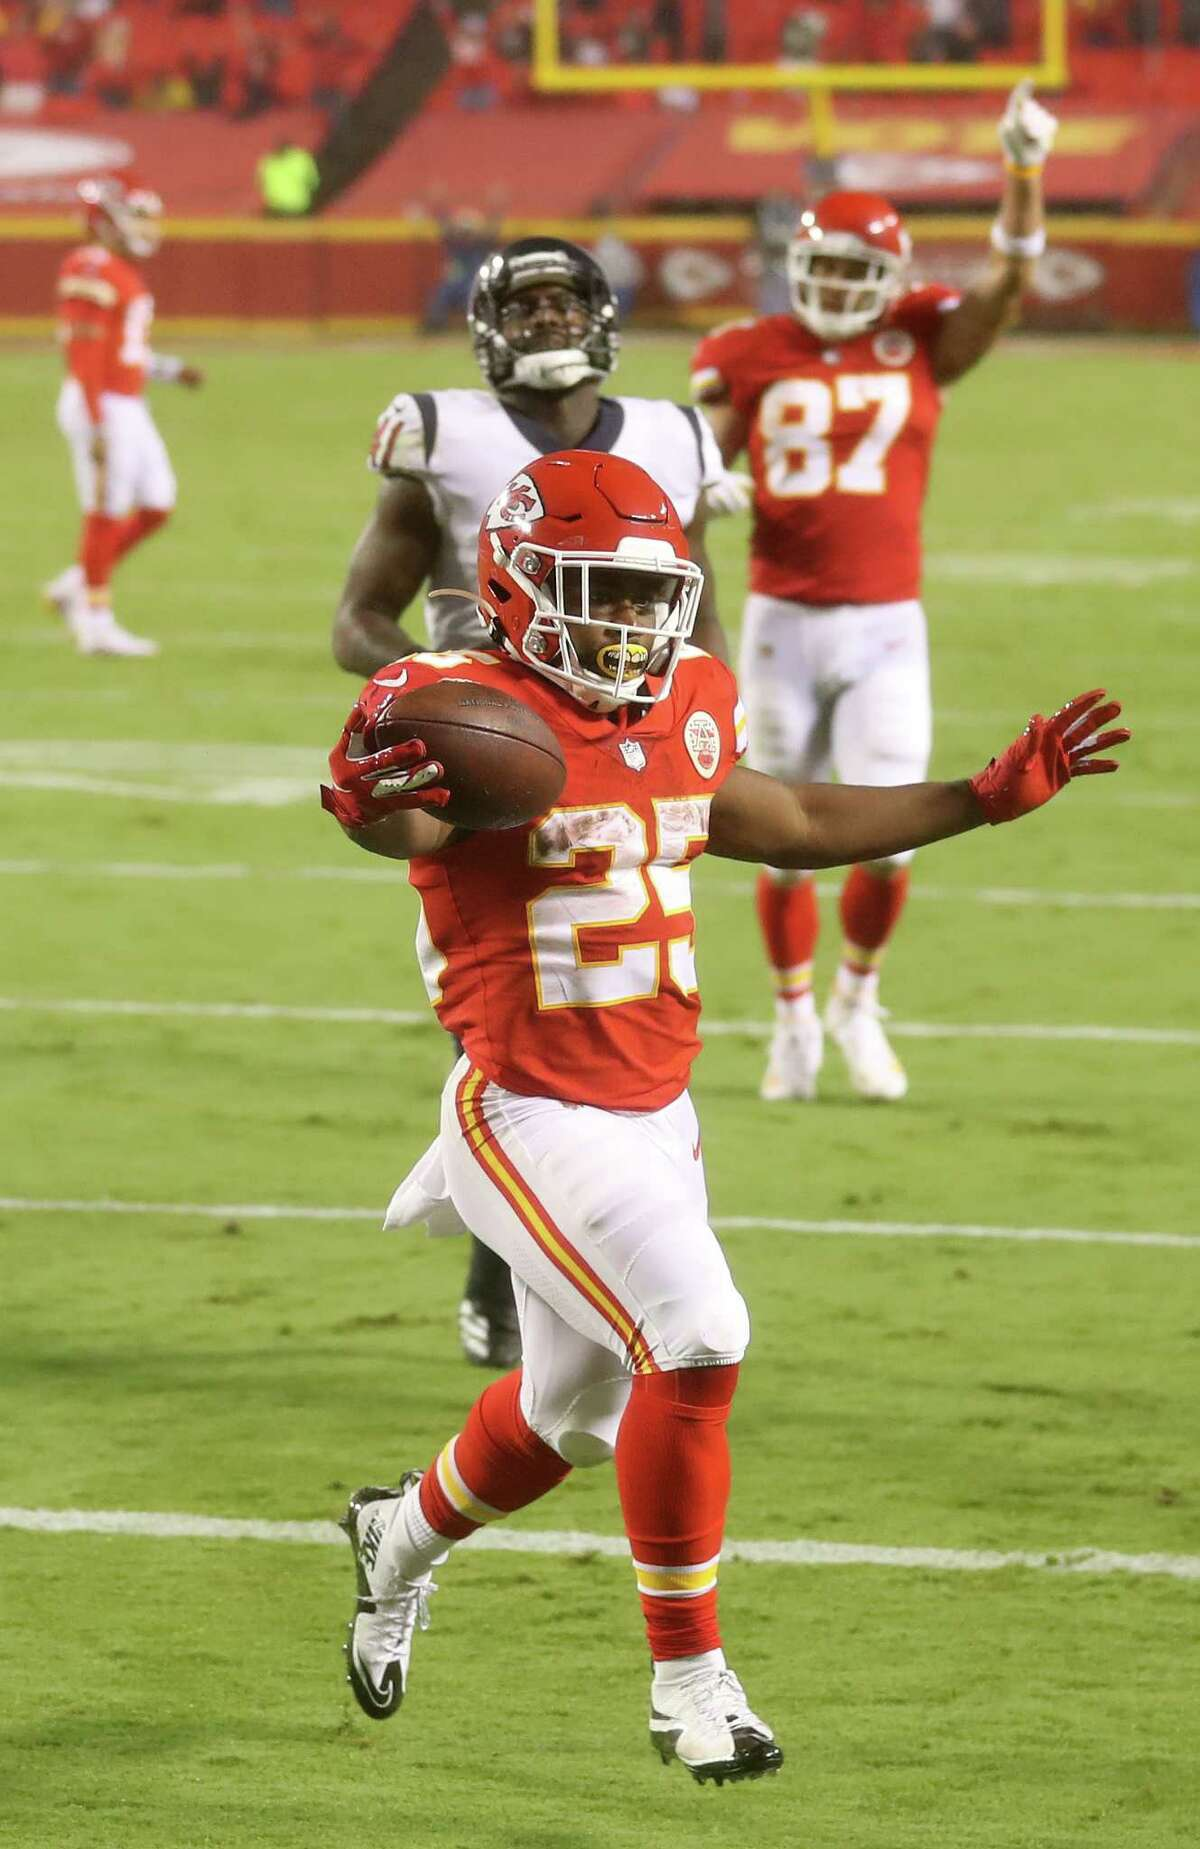 KANSAS CITY, MISSOURI - SEPTEMBER 10: Clyde Edwards-Helaire #25 of the Kansas City Chiefs scores a touchdown against the Houston Texans during the third quarter at Arrowhead Stadium on September 10, 2020 in Kansas City, Missouri. (Photo by Jamie Squire/Getty Images)